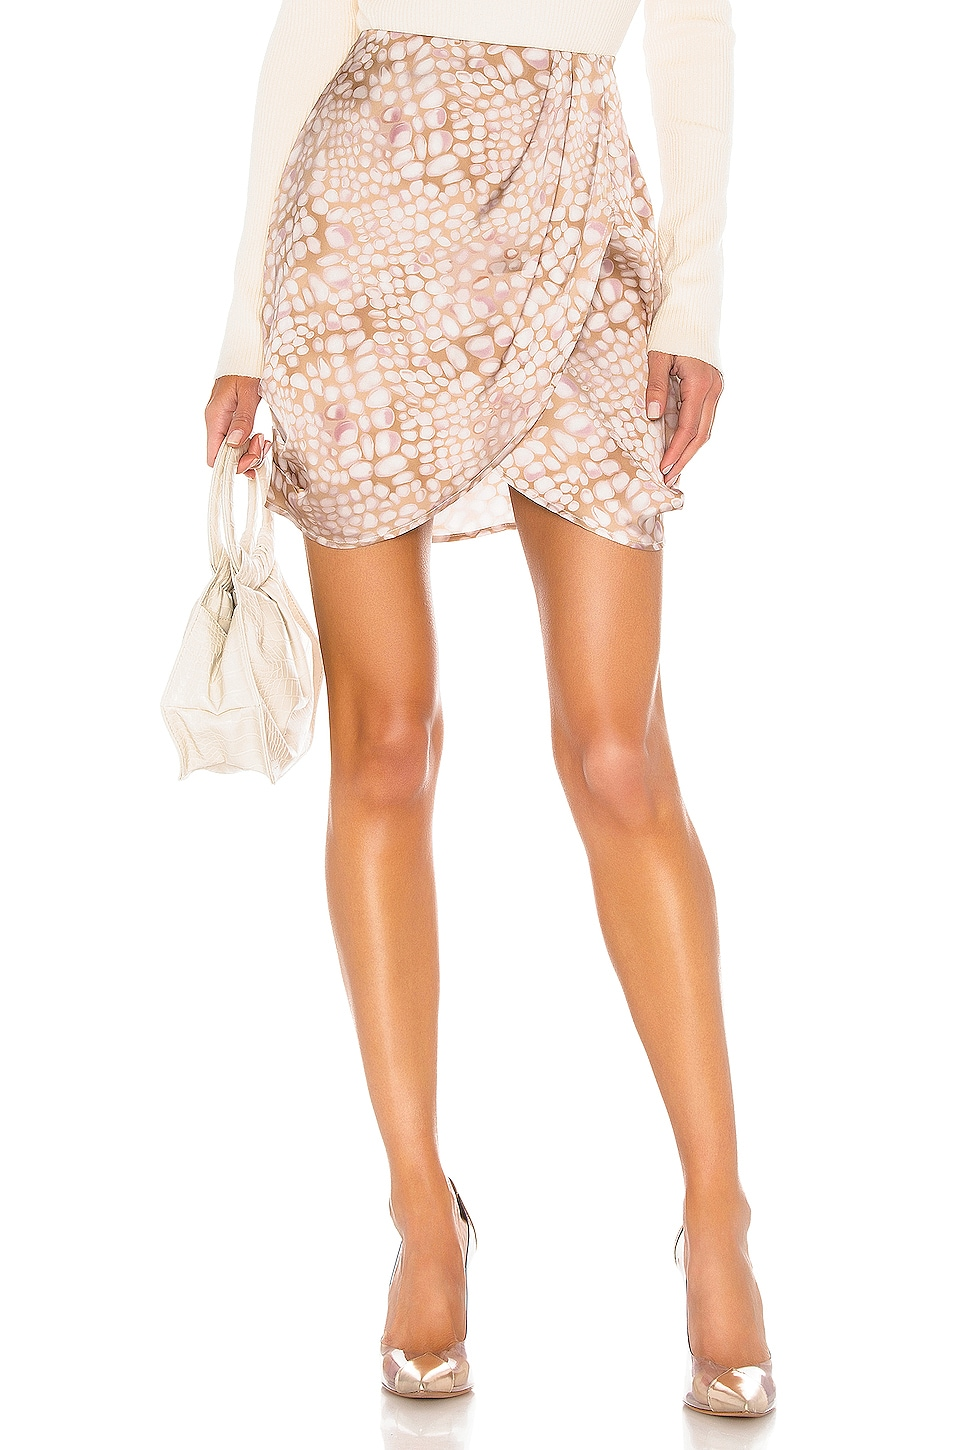 L'Academie The Jenny Mini Skirt in Multi Scale